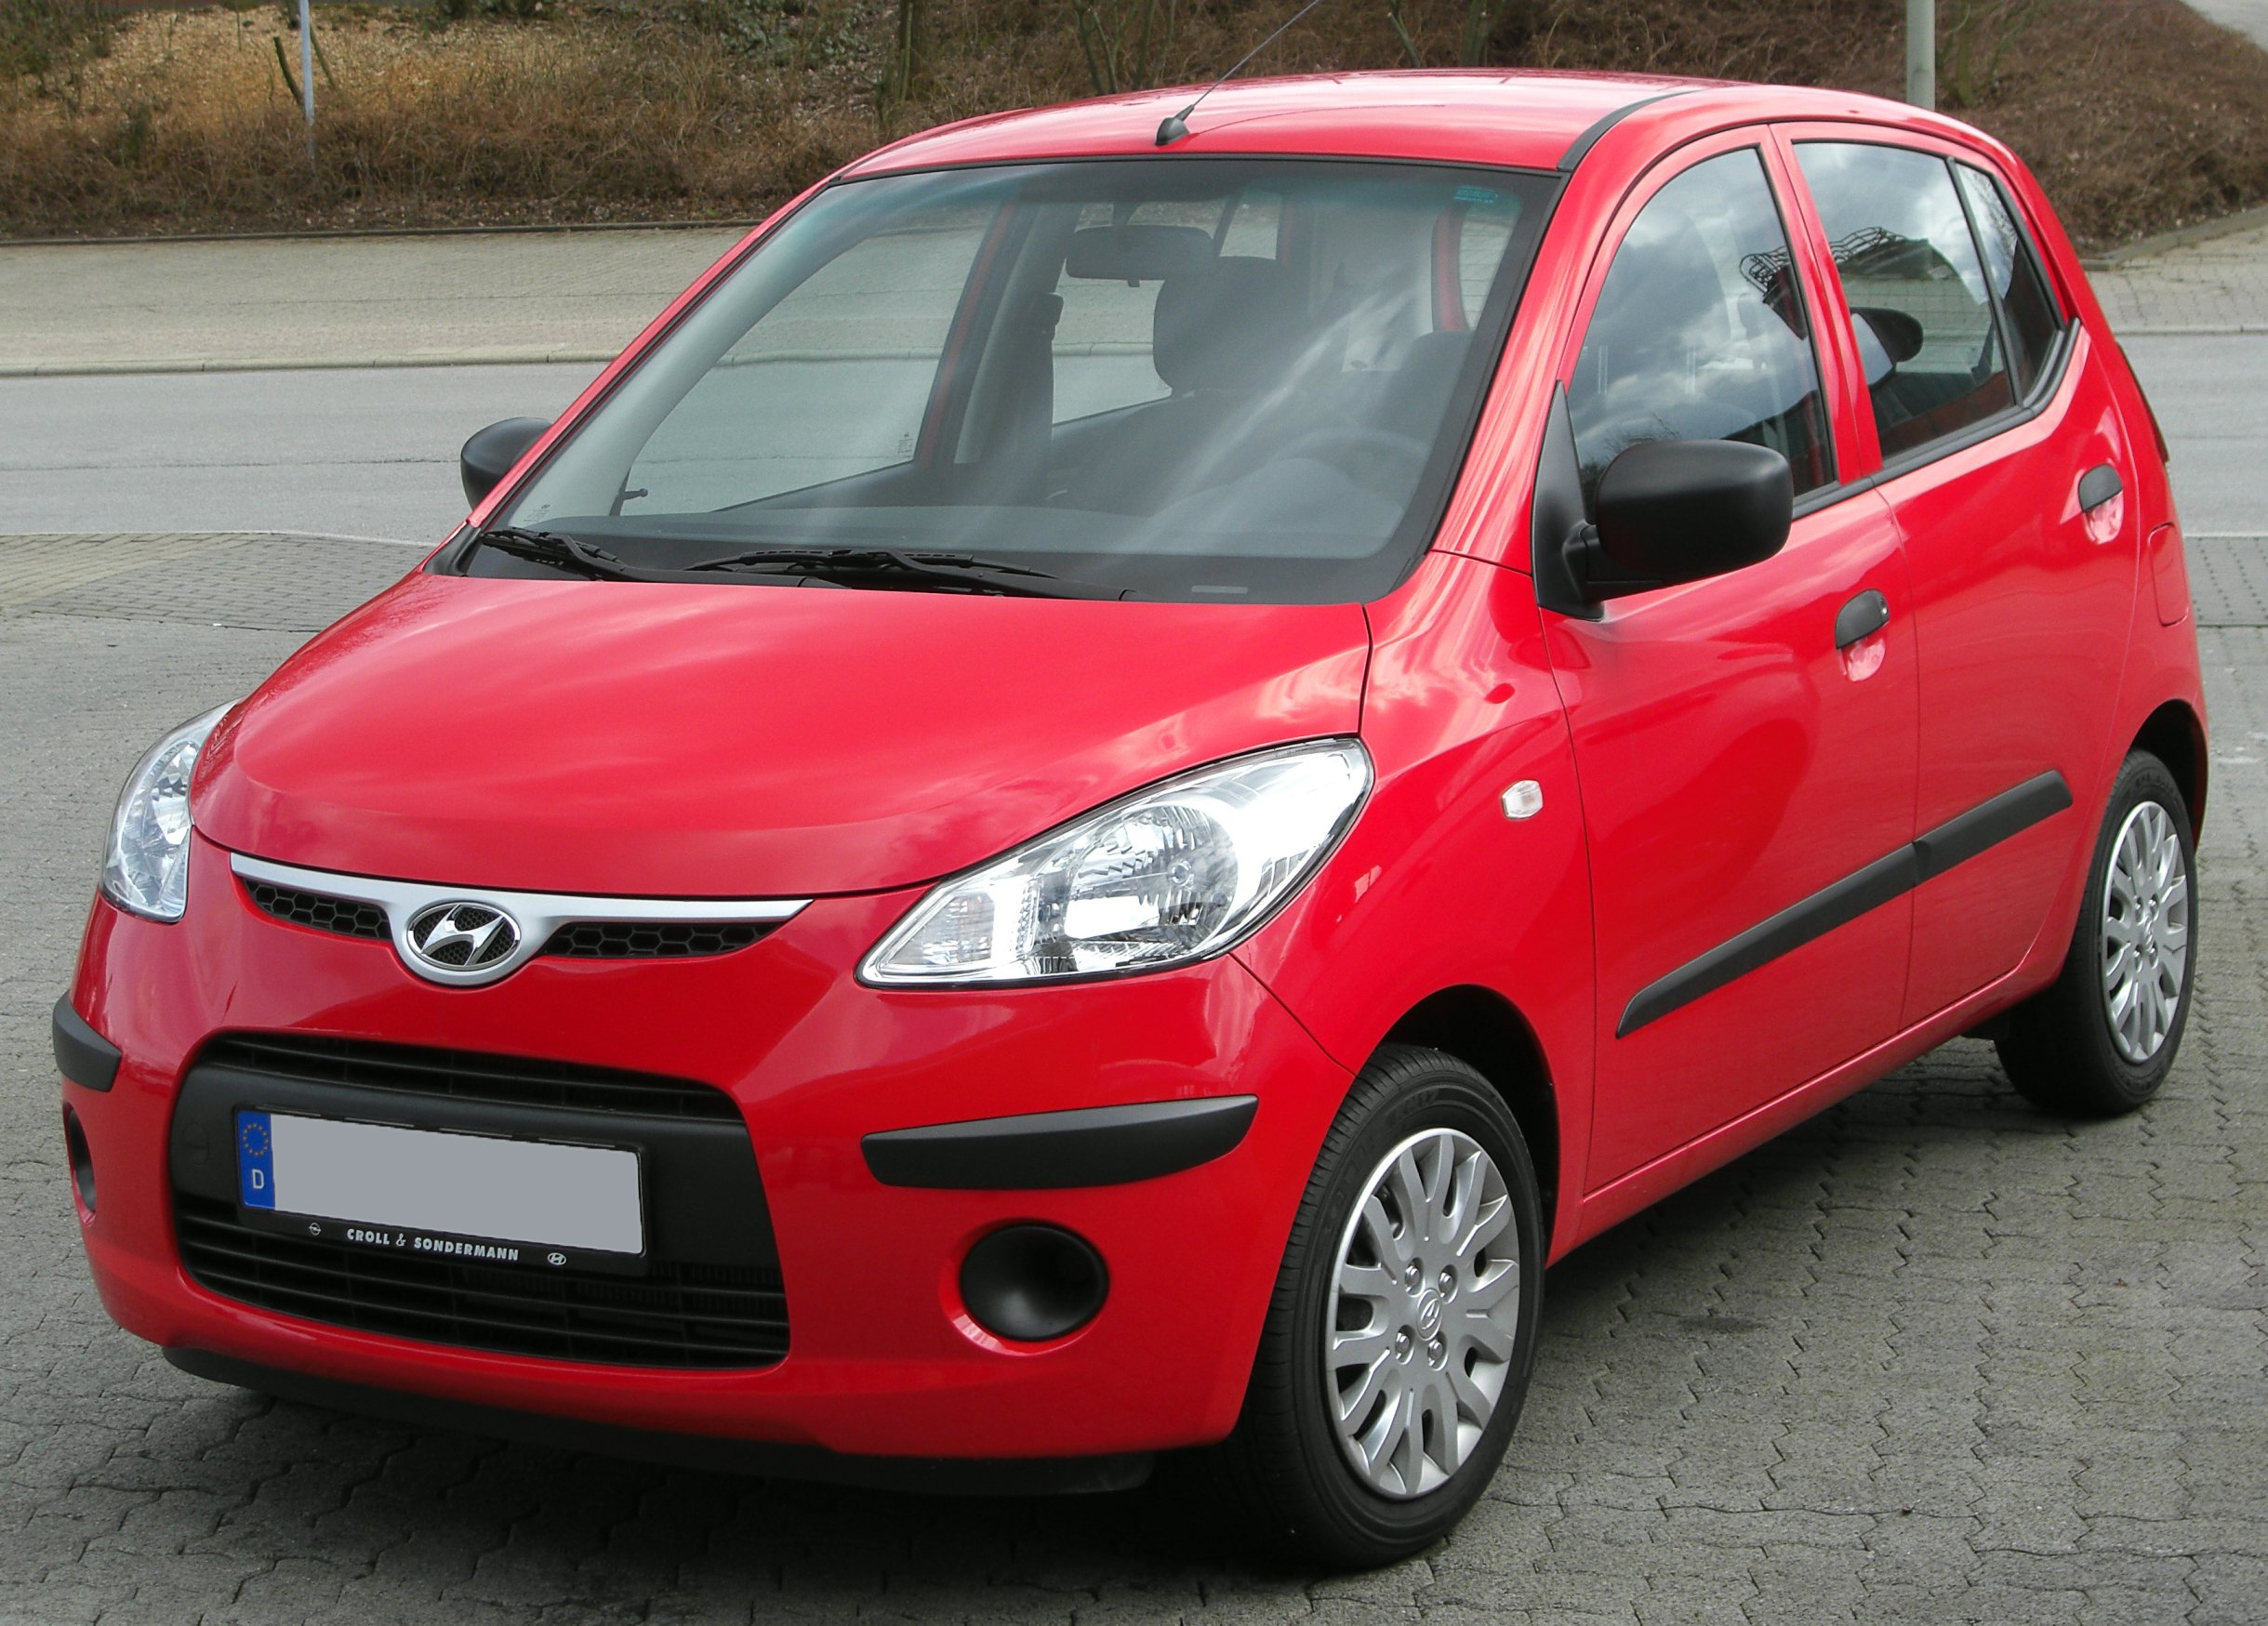 Pictures of hyundai i10